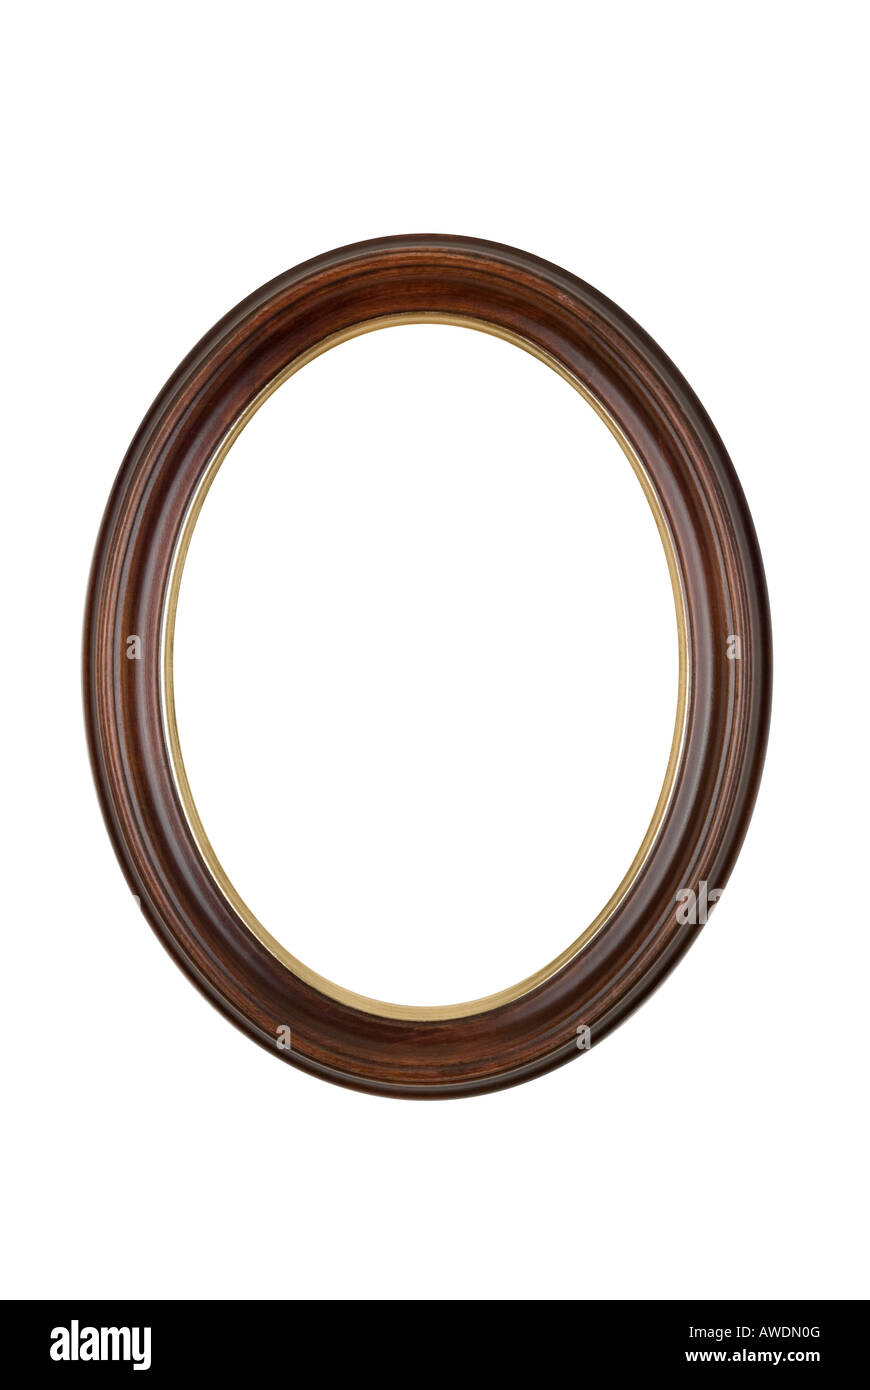 Picture frame oval round brown wood isolated on white background picture frame oval round brown wood isolated on white background jeuxipadfo Gallery